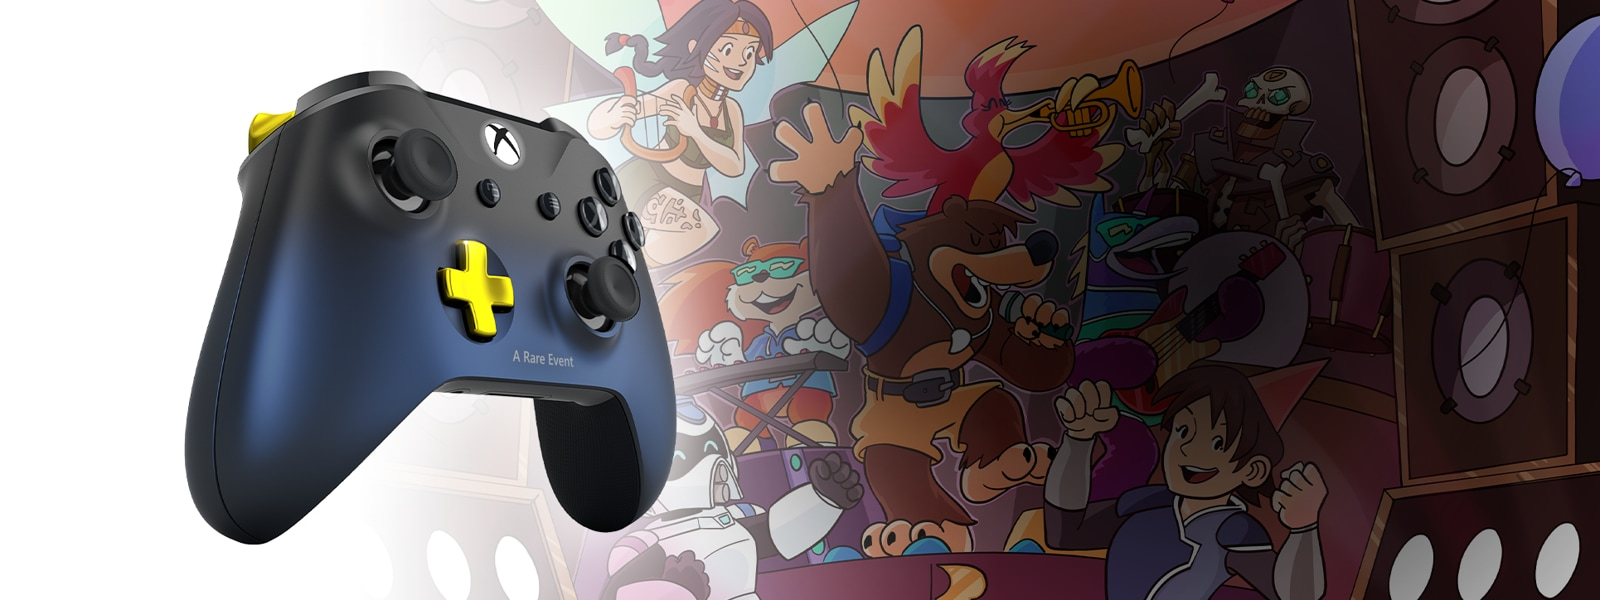 Blue shadow xbox one controller with gold d pad and a collection of Rare characters behind.